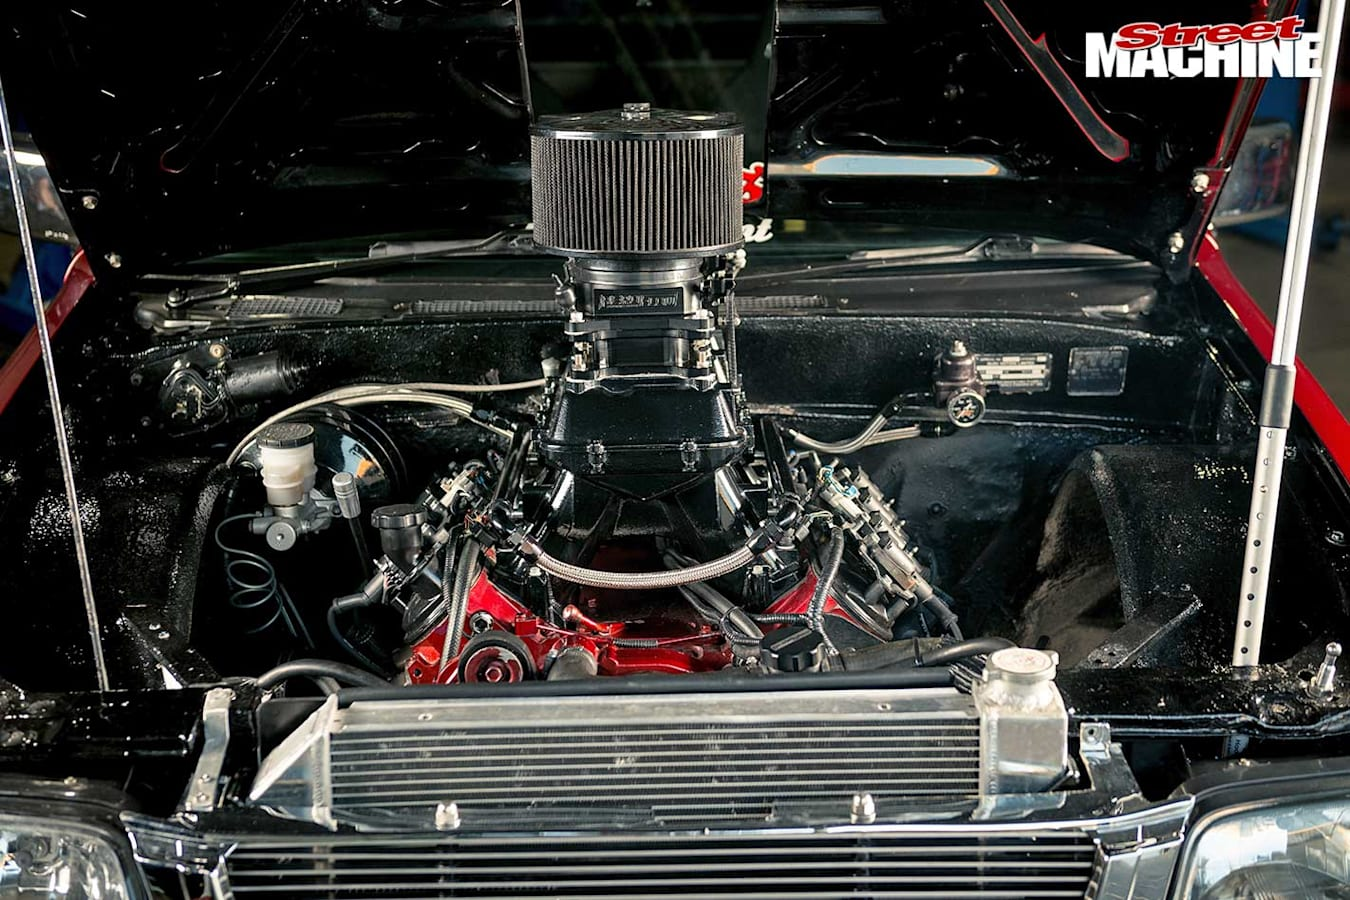 LS-powered Rodeo engine bay